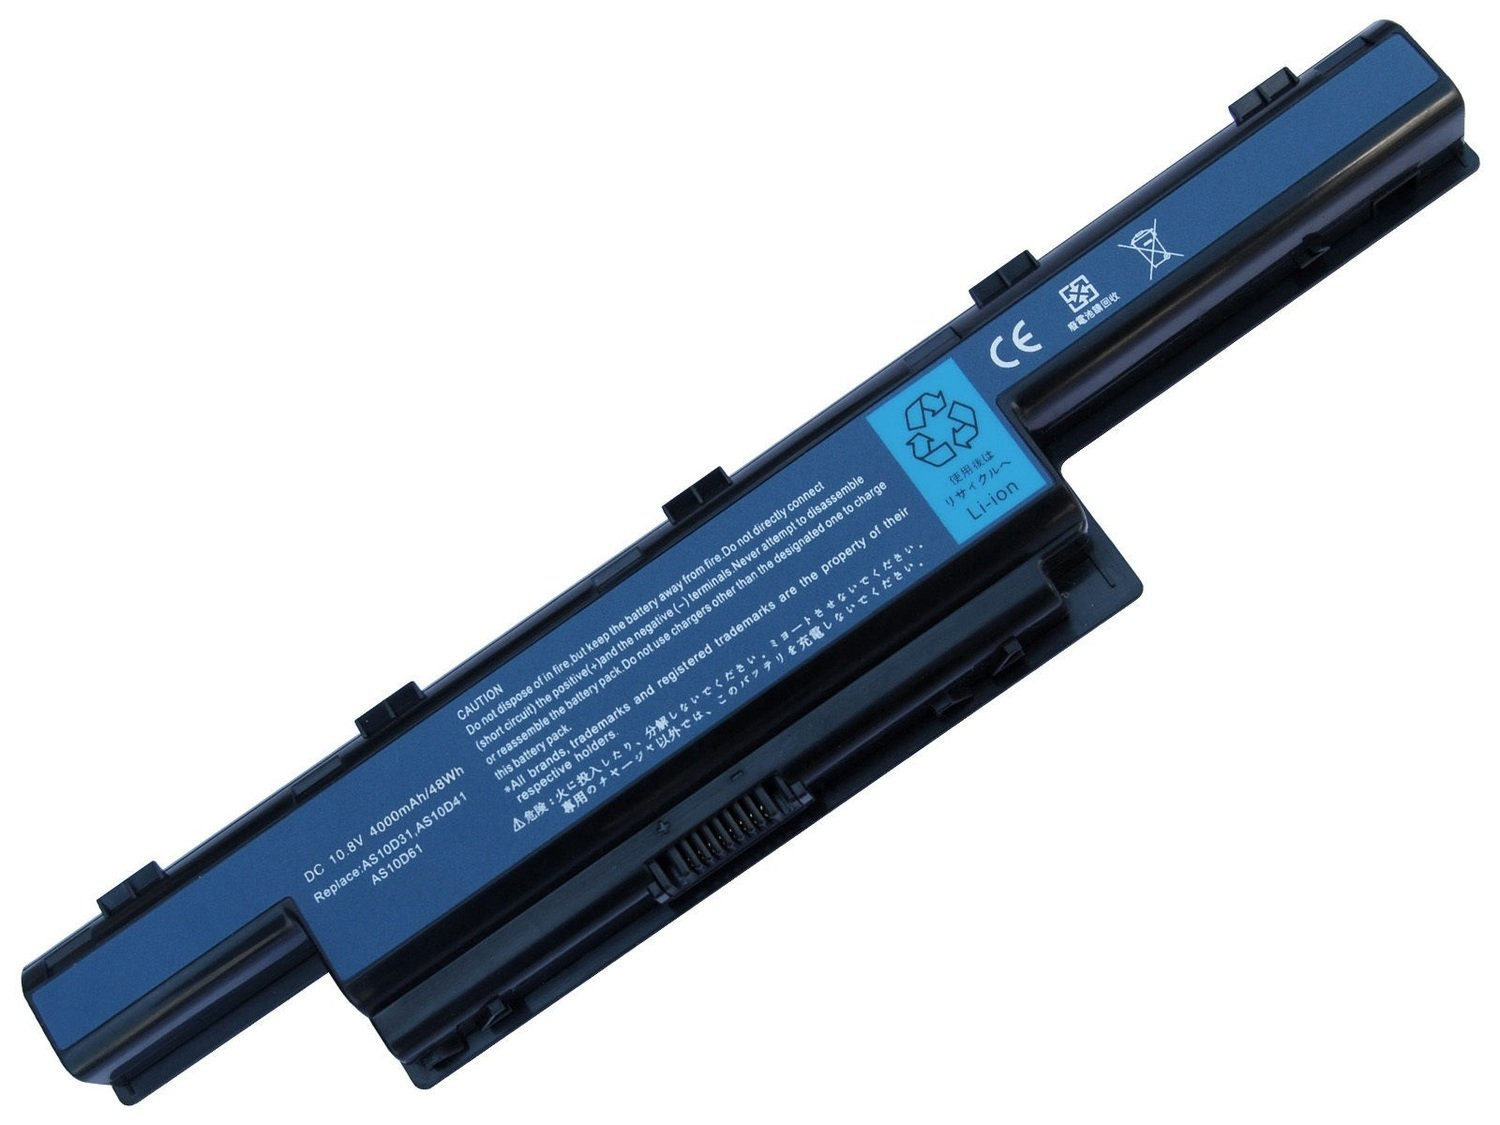 Acer AS10D AS10D31 AS10D3E AS10D41 AS10D51 Compatible laptop battery